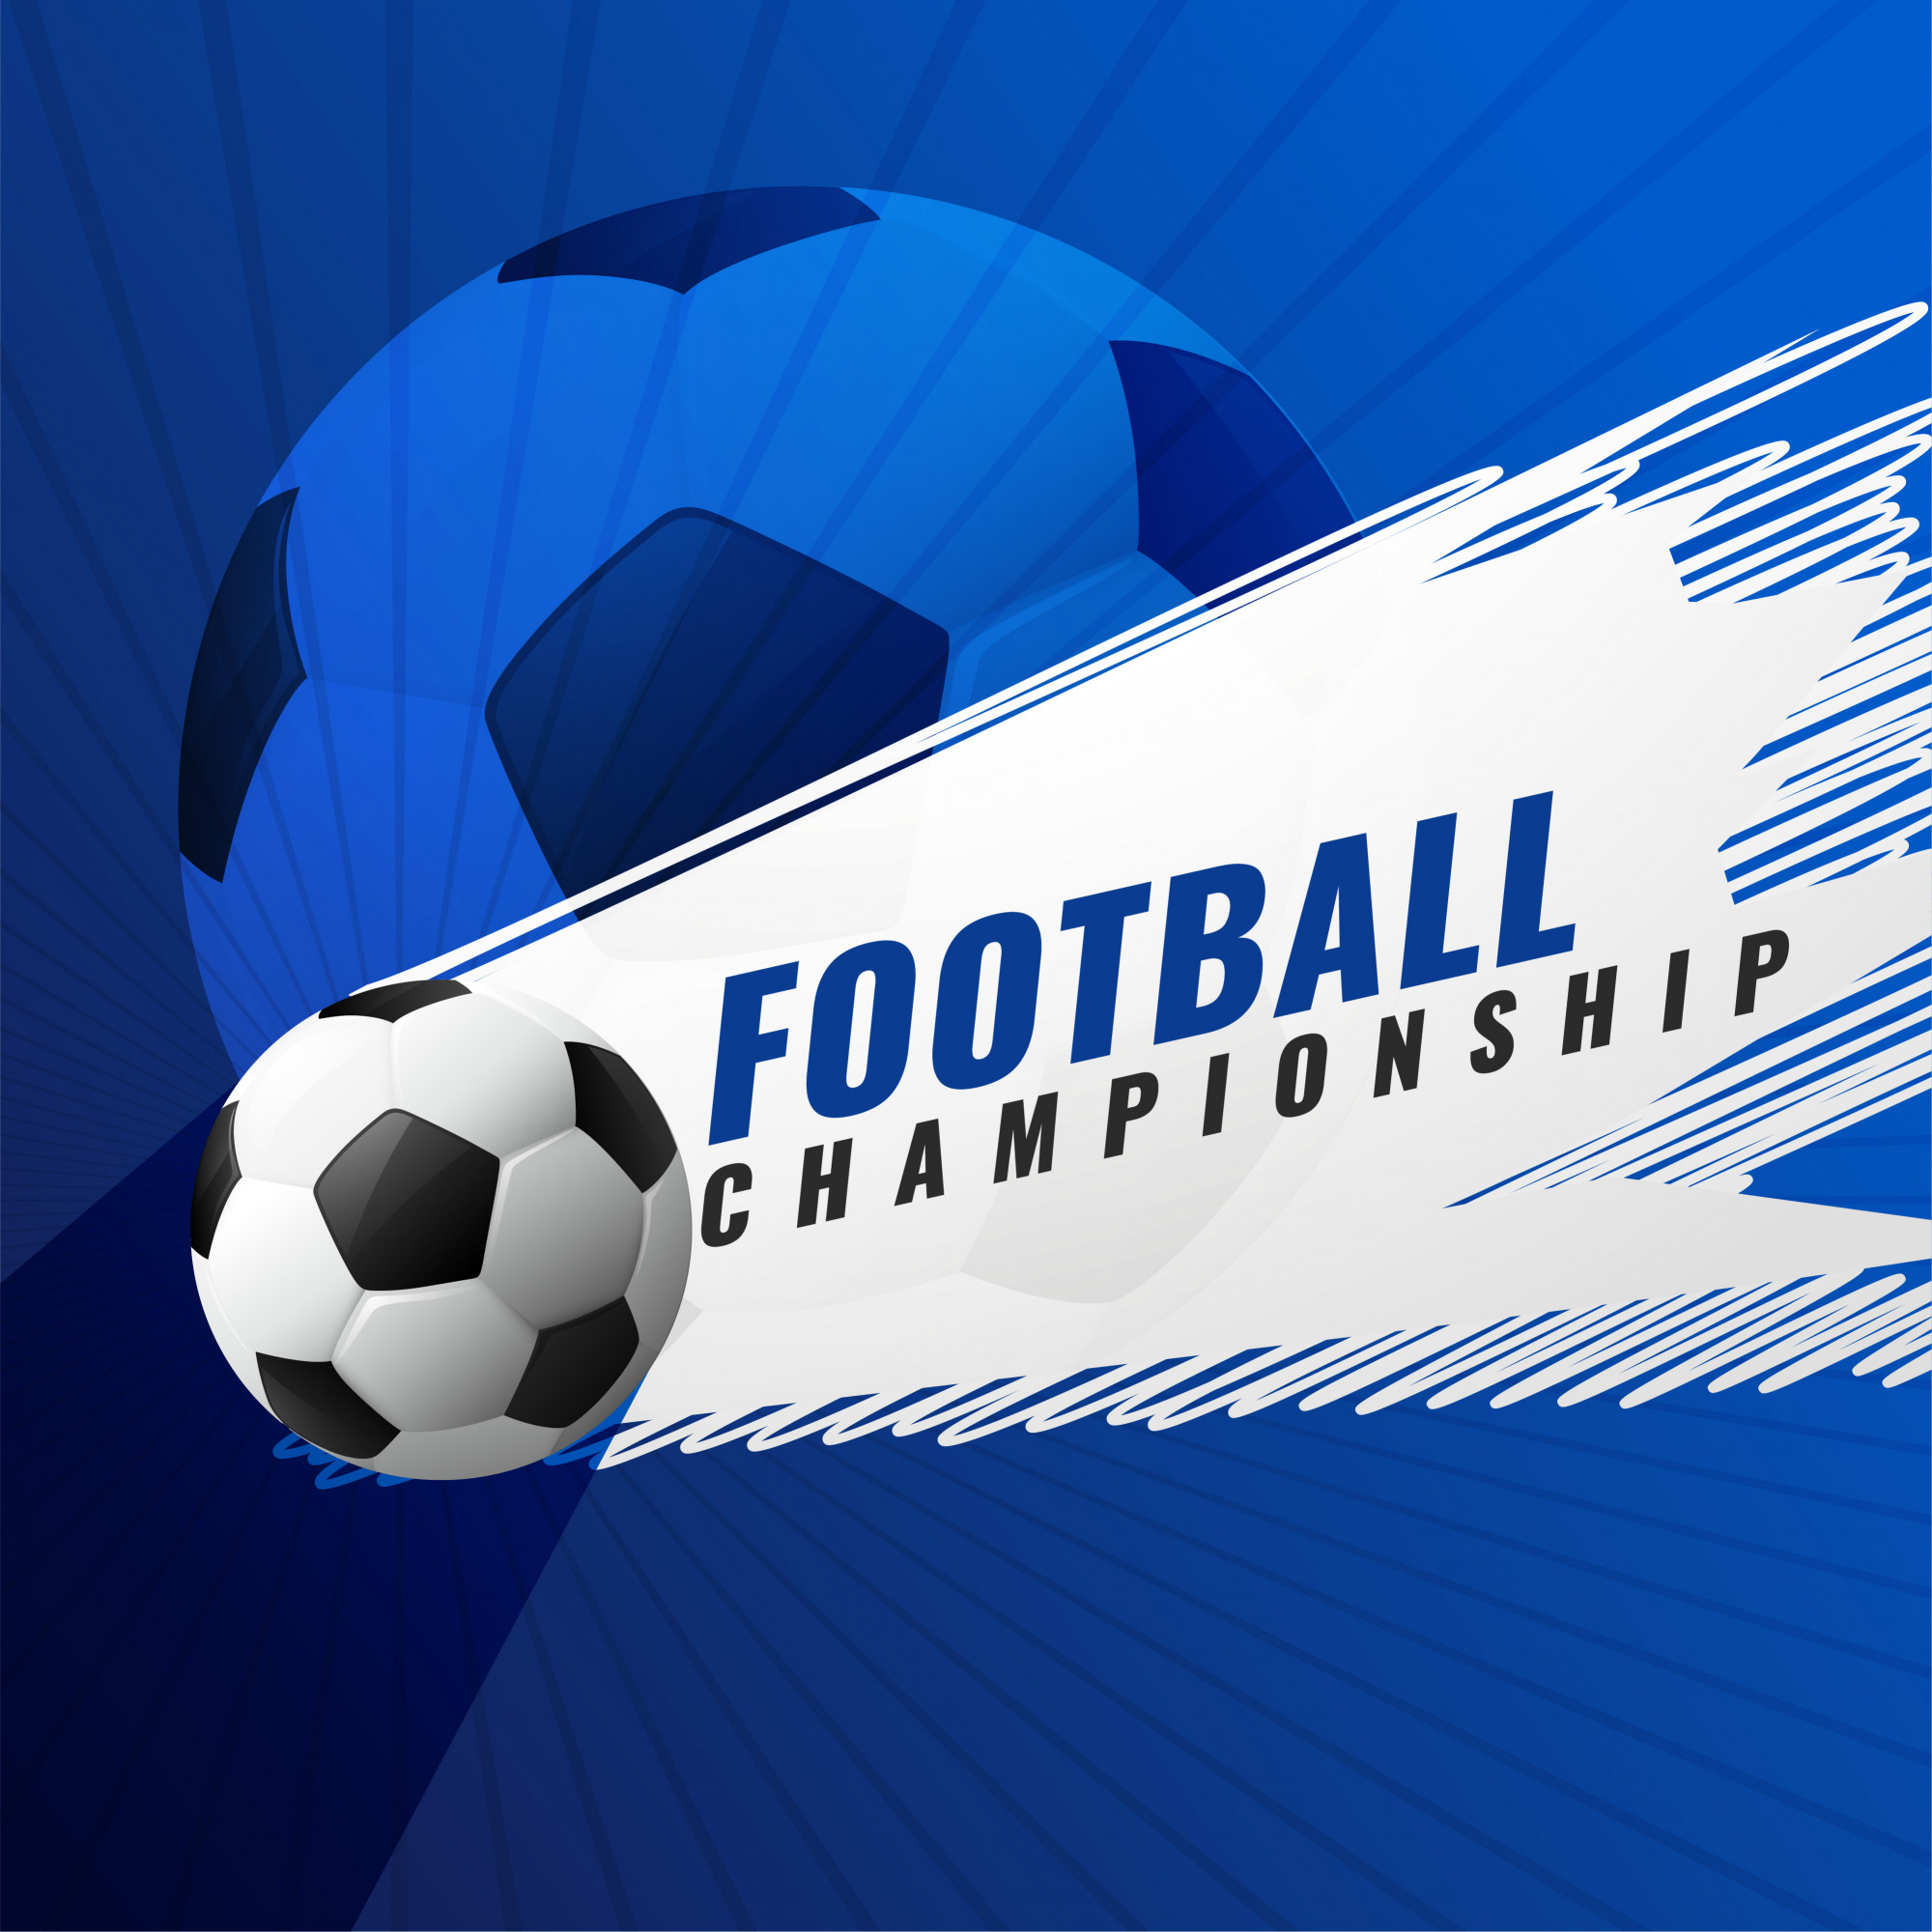 Football championship tournament game  background